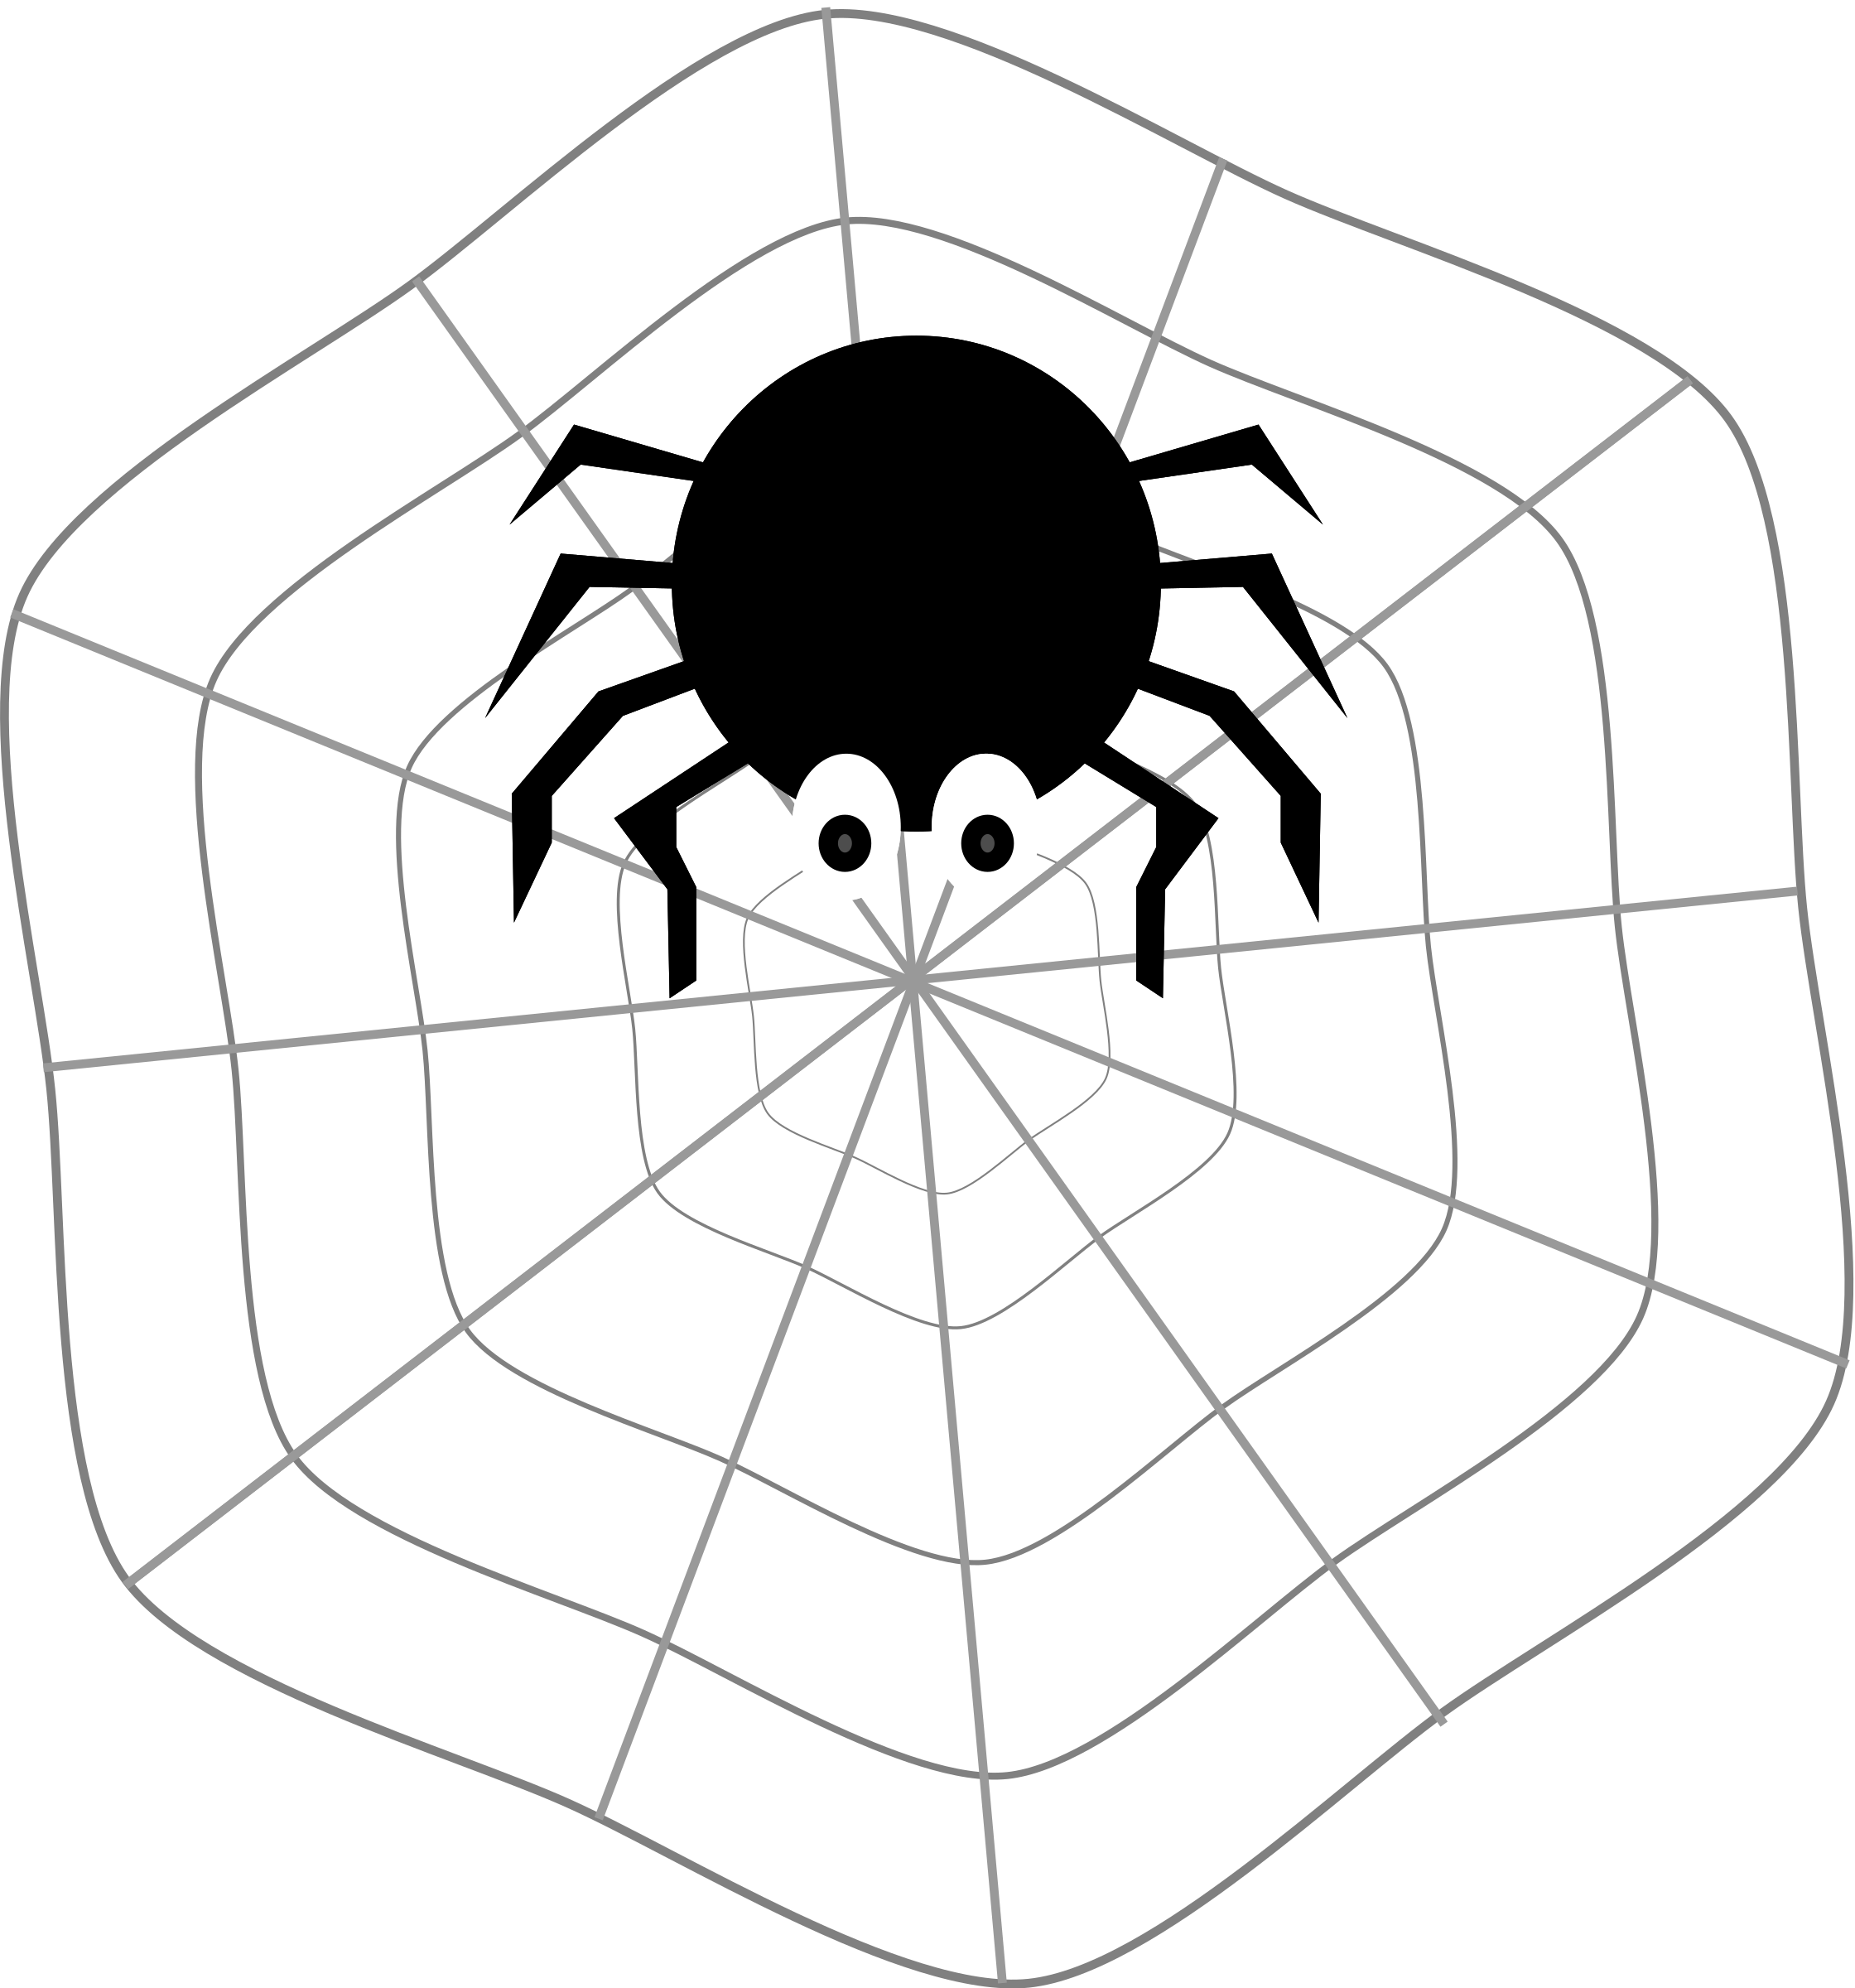 Spider on Web by matheod